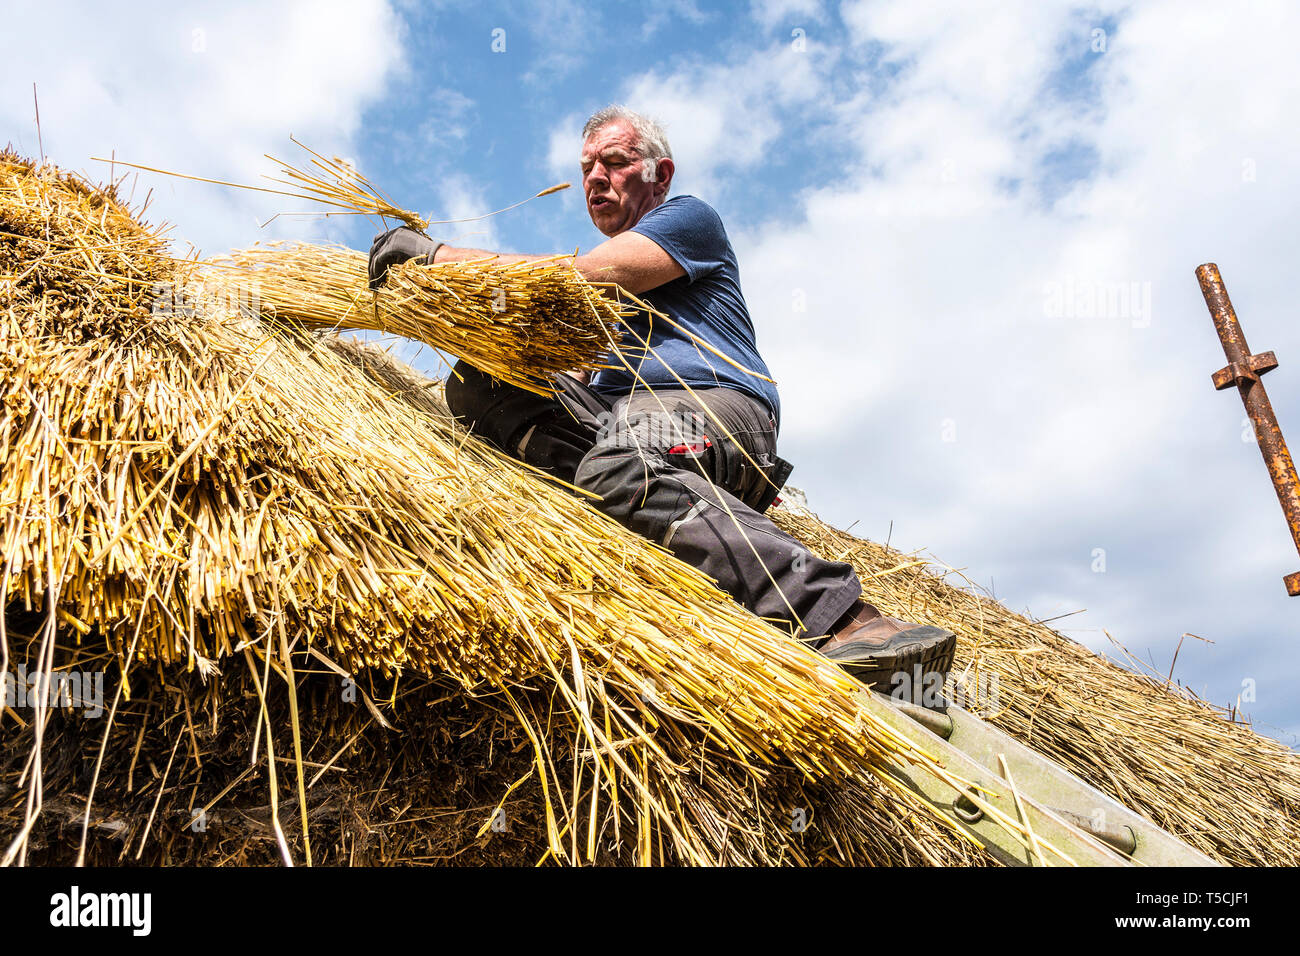 Traditional Thatching Stock Photos Amp Traditional Thatching